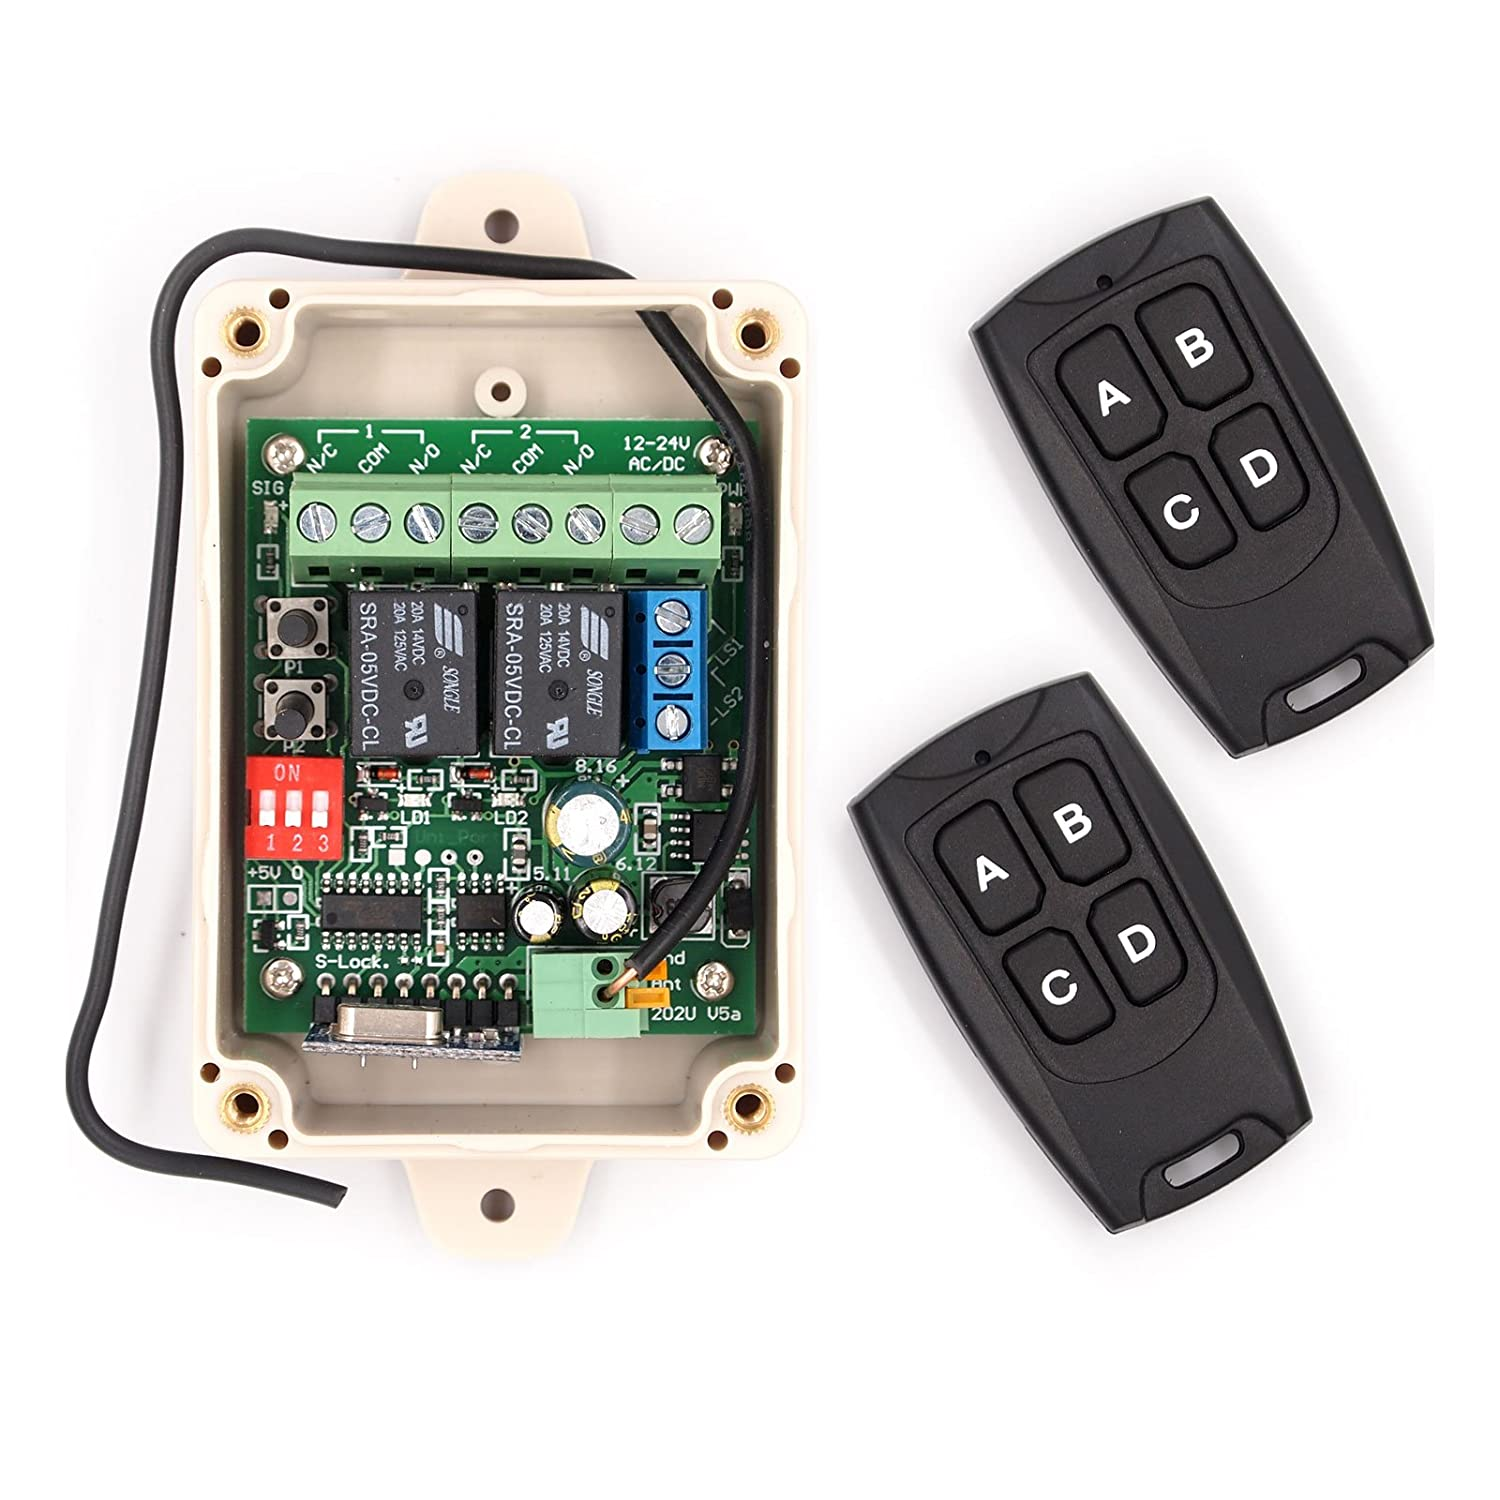 Solidremote 12v 24v Secure Wireless Rf Remote Control Relay Switch Circuit Closed Until The Limit Opens Is Universal 2 Channel 433mhz Receiver With Fcc Id Transmitters For Garage Door Openers